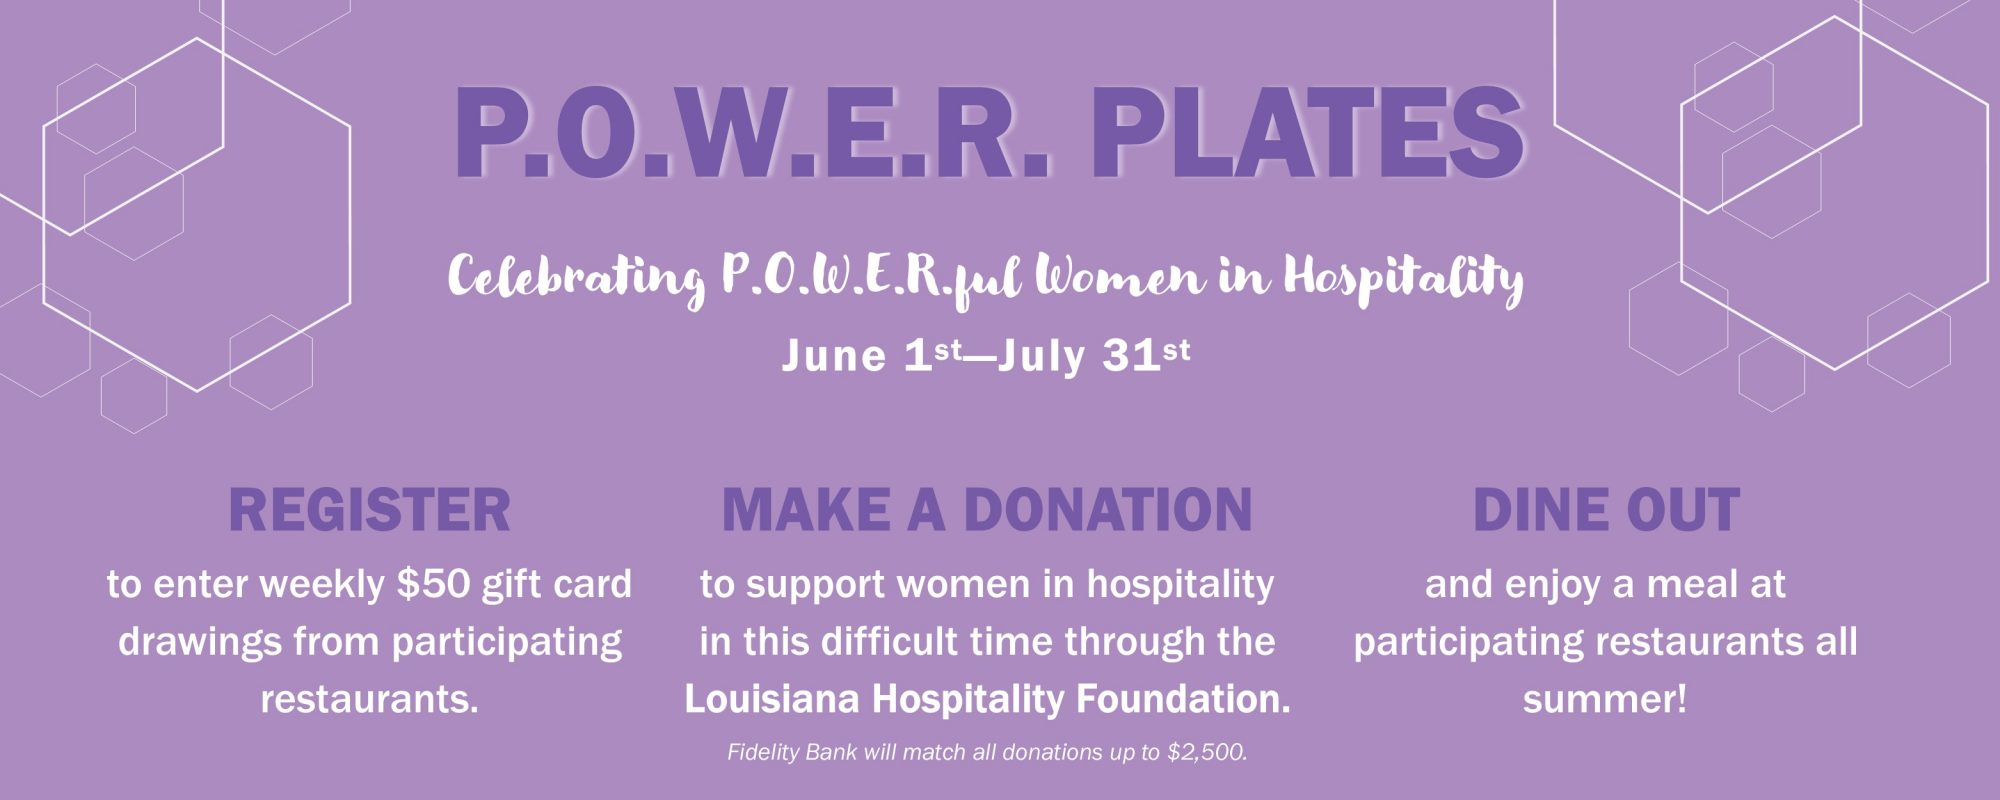 POWER Plates - Banner 2